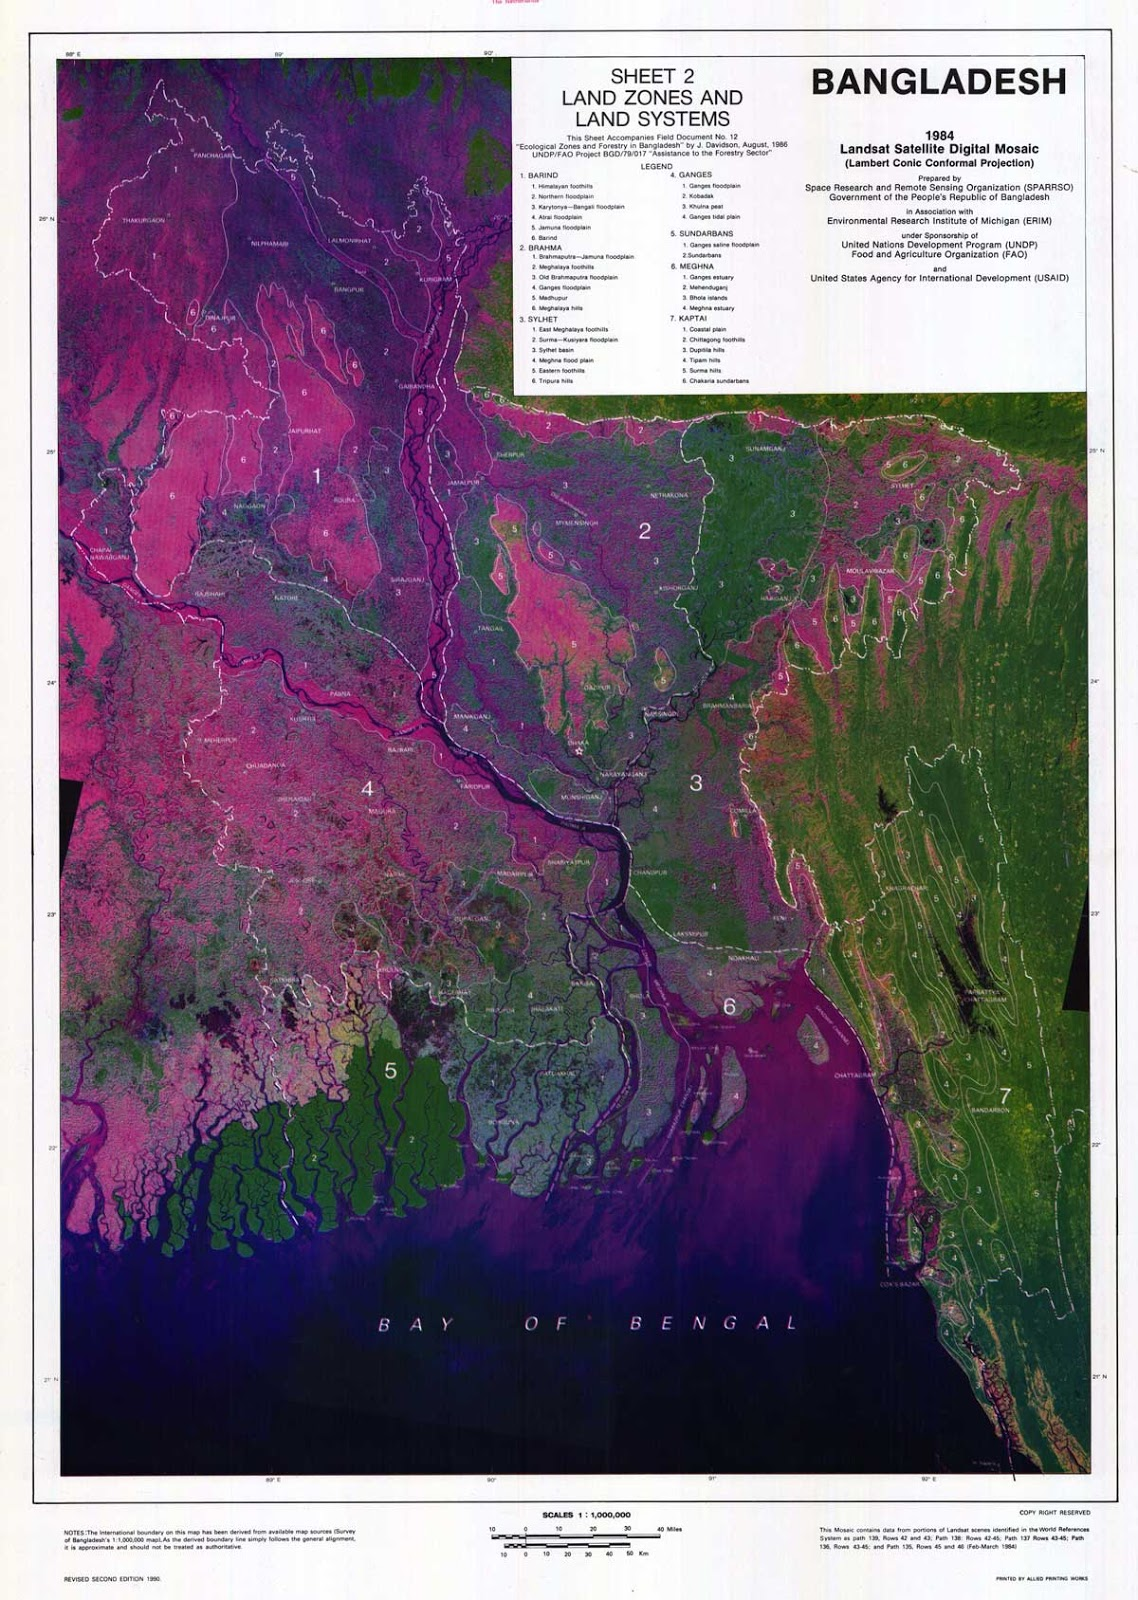 Landsat (TM) Satellite Digital Mosaic Image of Bangladesh